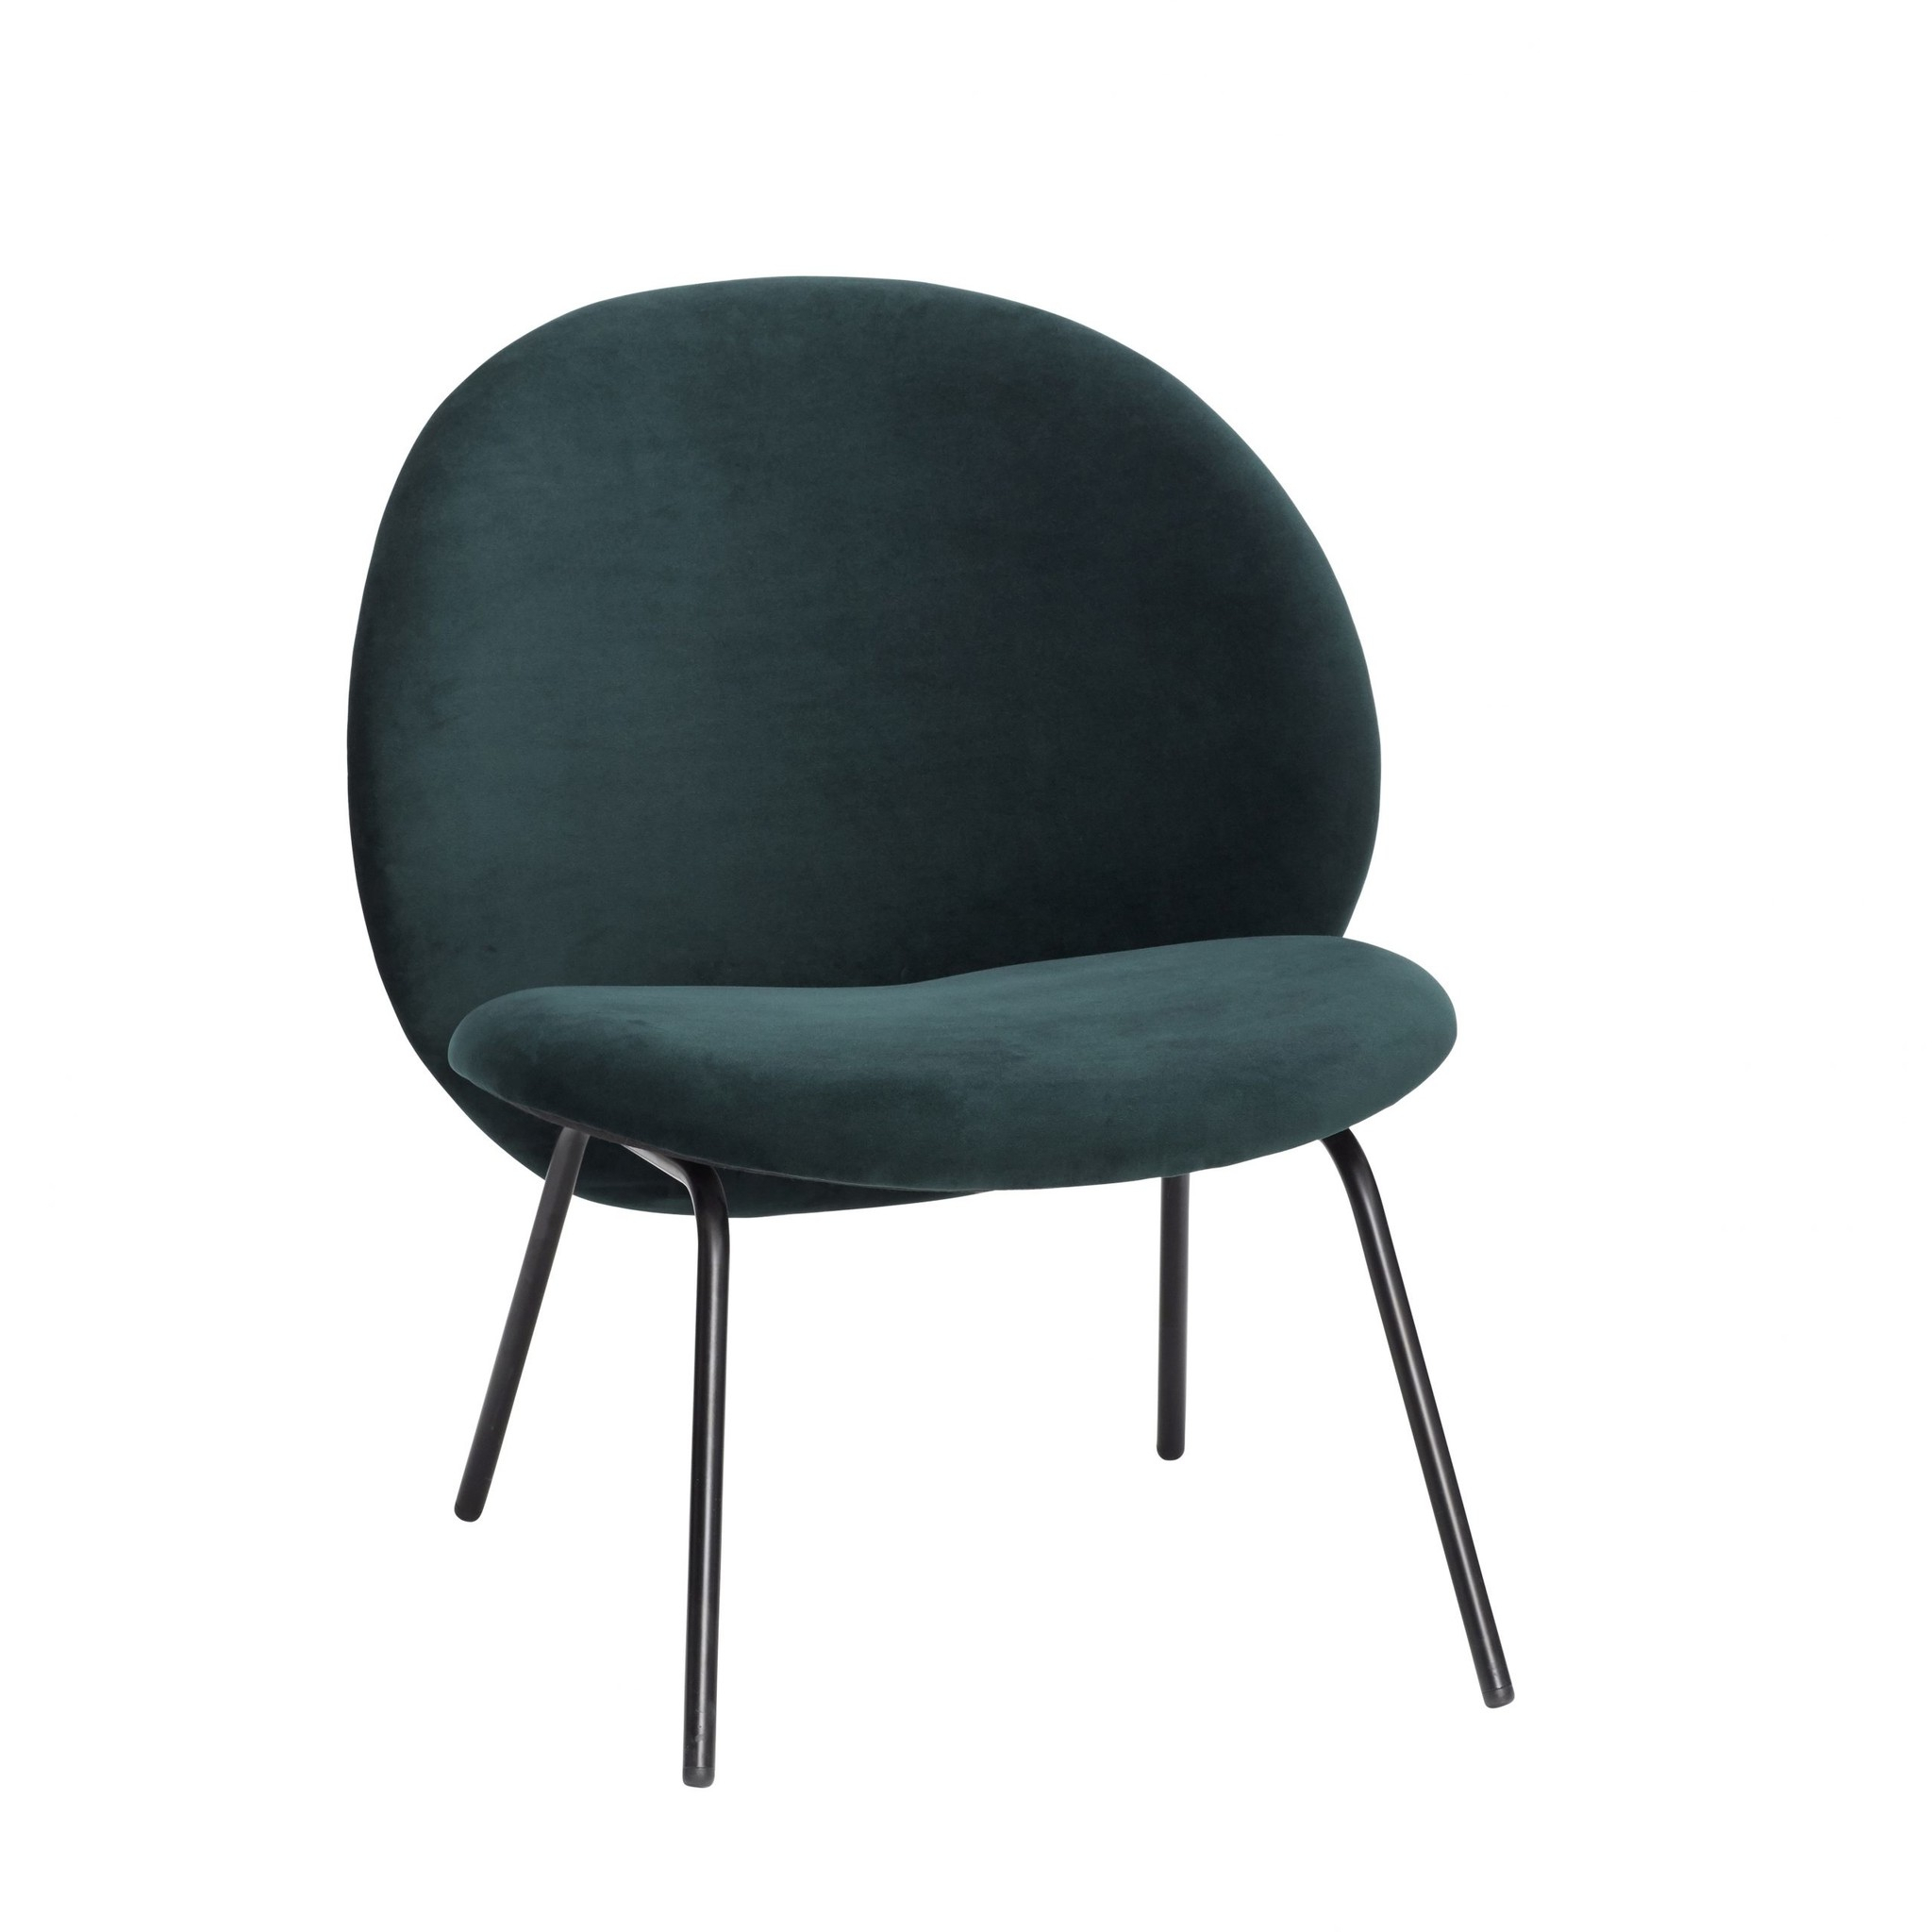 Hübsch Lounge Chair With Metal Legs – Green For Lounge Chairs With Metal Leg (View 4 of 15)